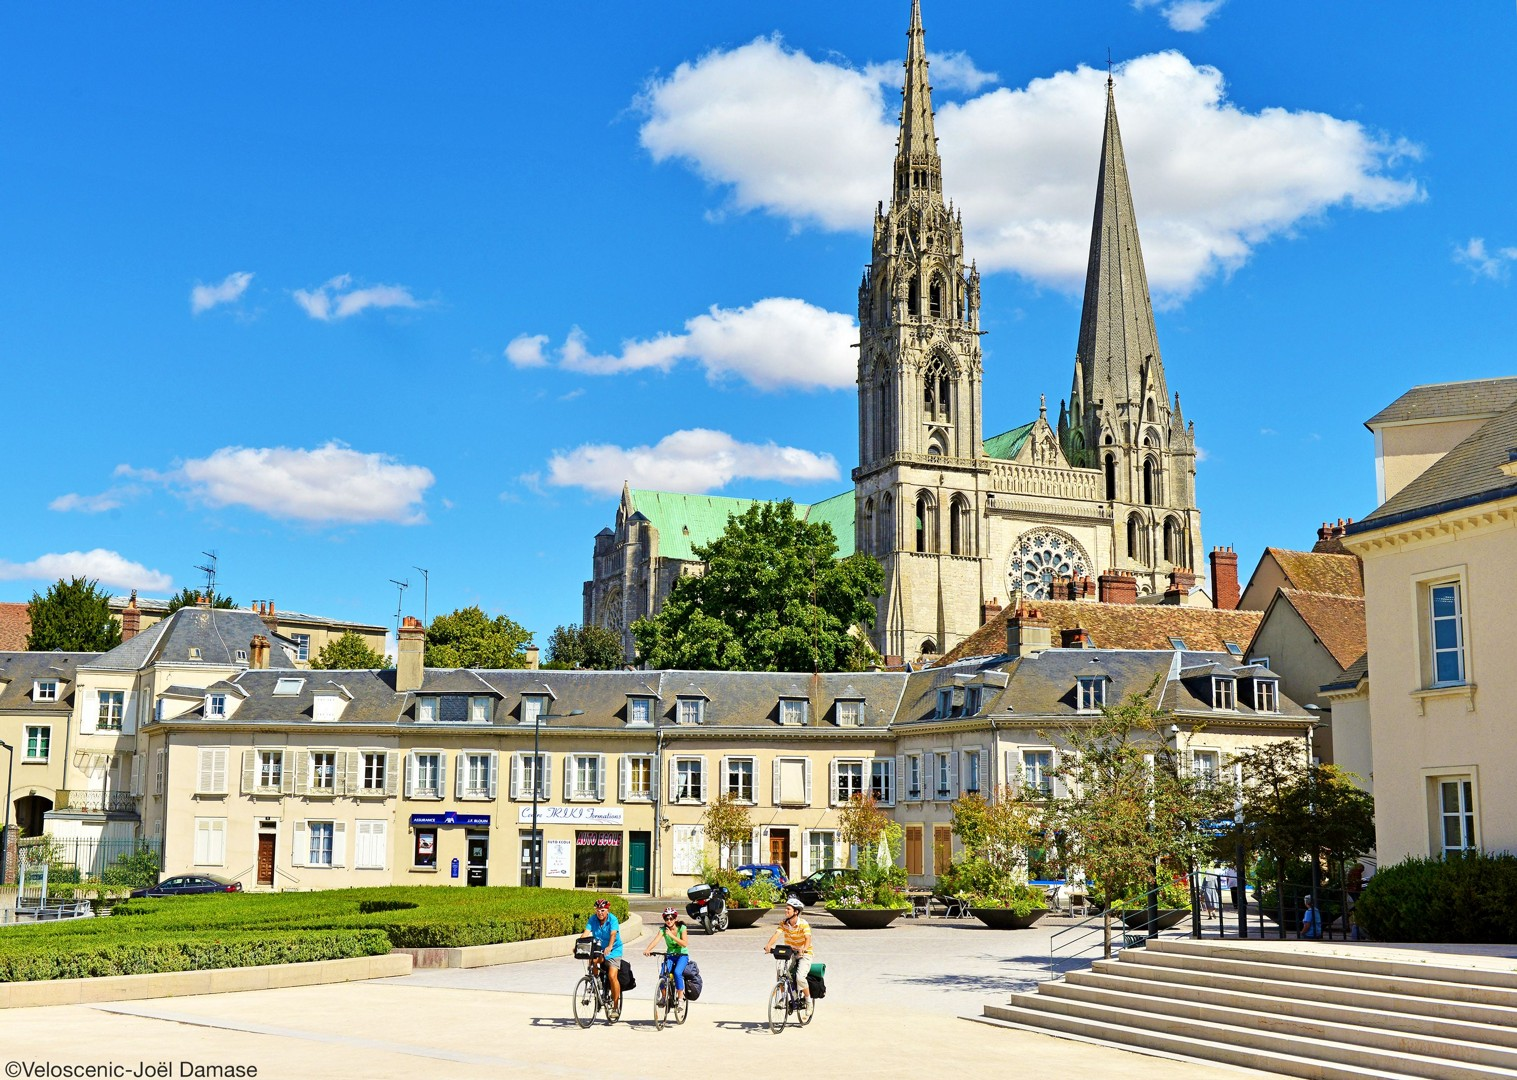 chartres-france-cycling-leisure-holiday-culture-paris.jpg - NEW! France - Versailles to Mont Saint Michel - Self-Guided Leisure Cycling Holiday - Leisure Cycling